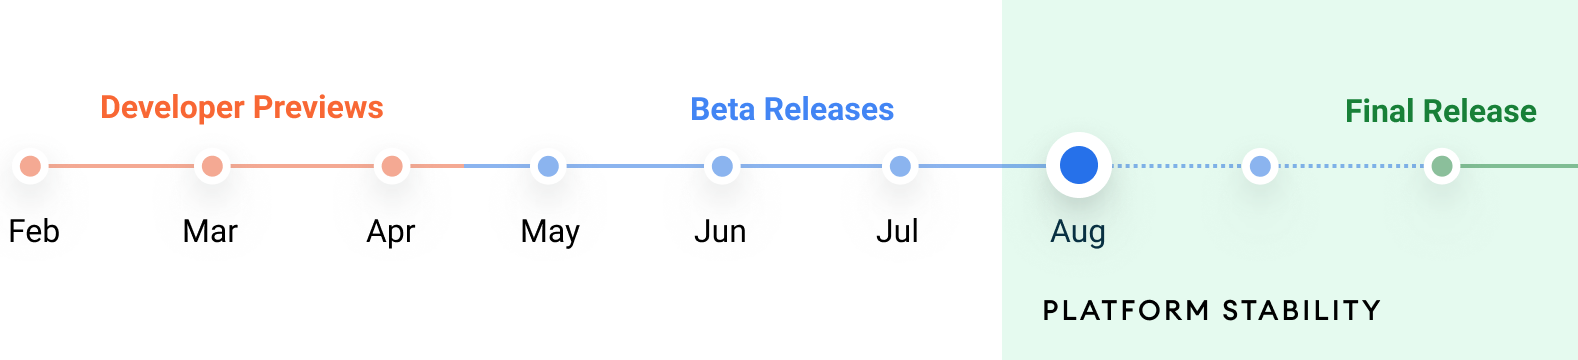 Android 12 final release timeline